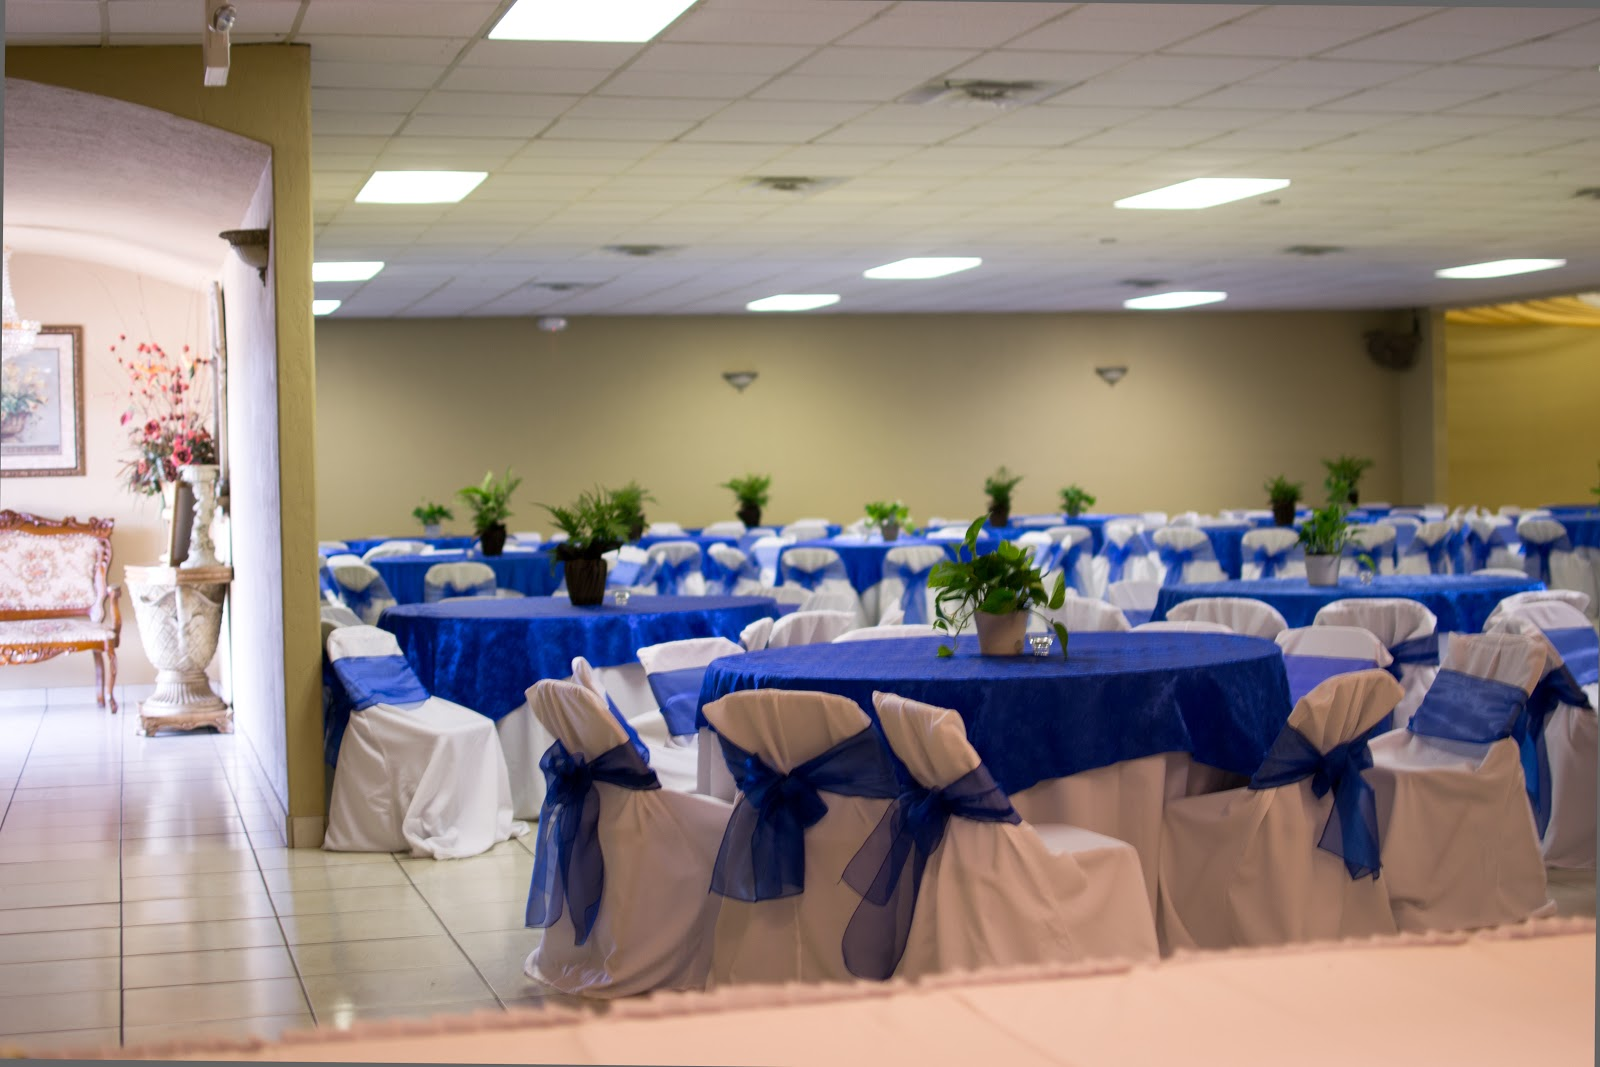 Rincon Real Hall Decorations: October 2012